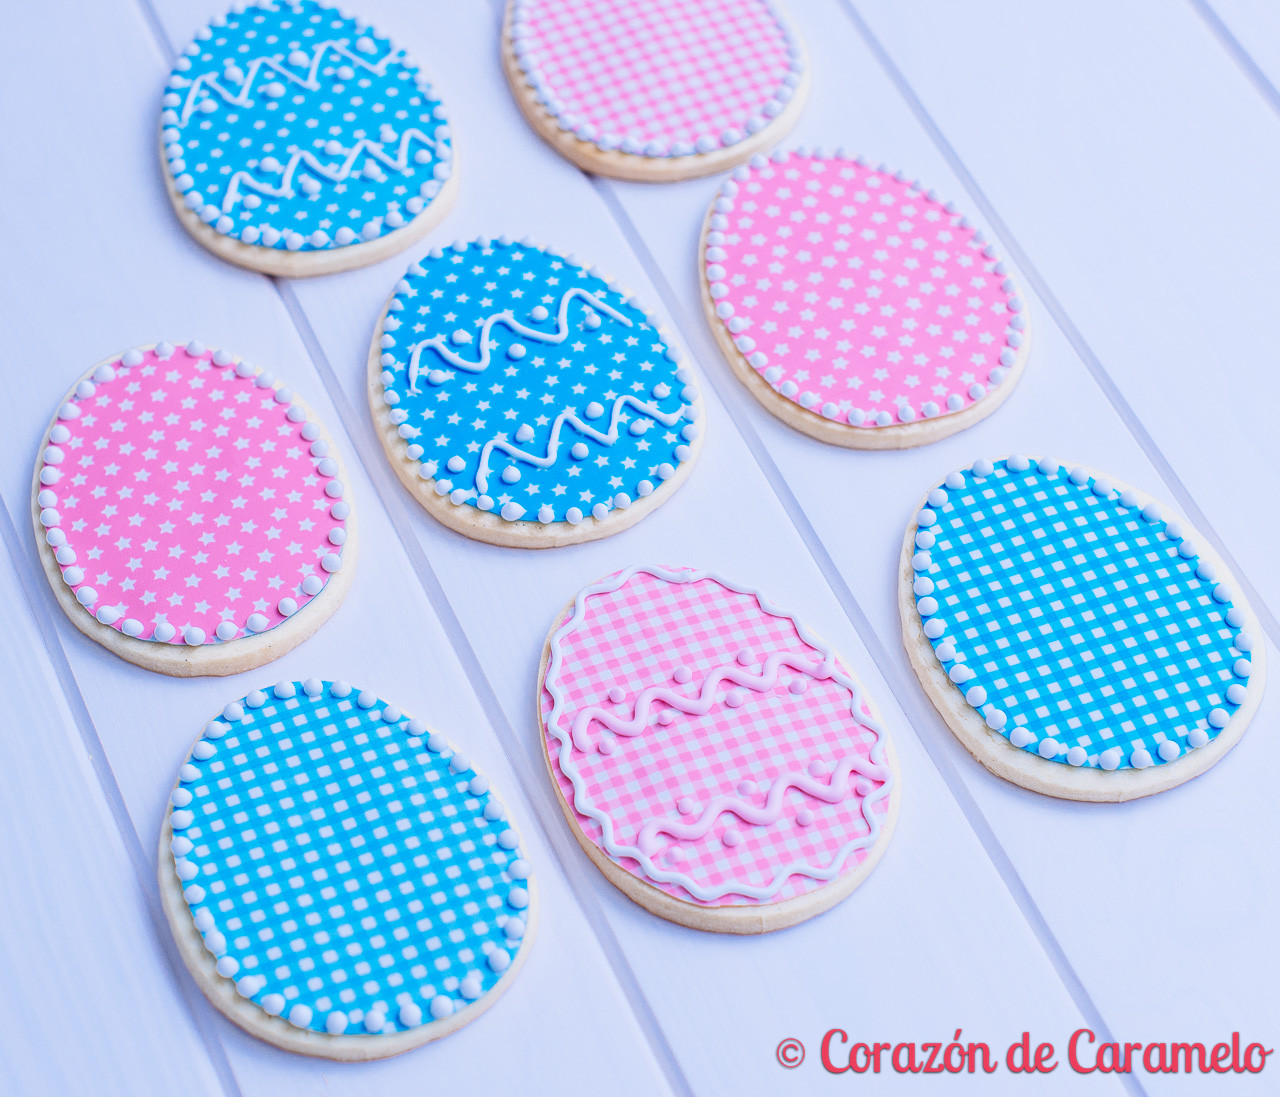 Como Decorar Galletas De Corazon Galletas Decoradas Con Papel De Azúcar